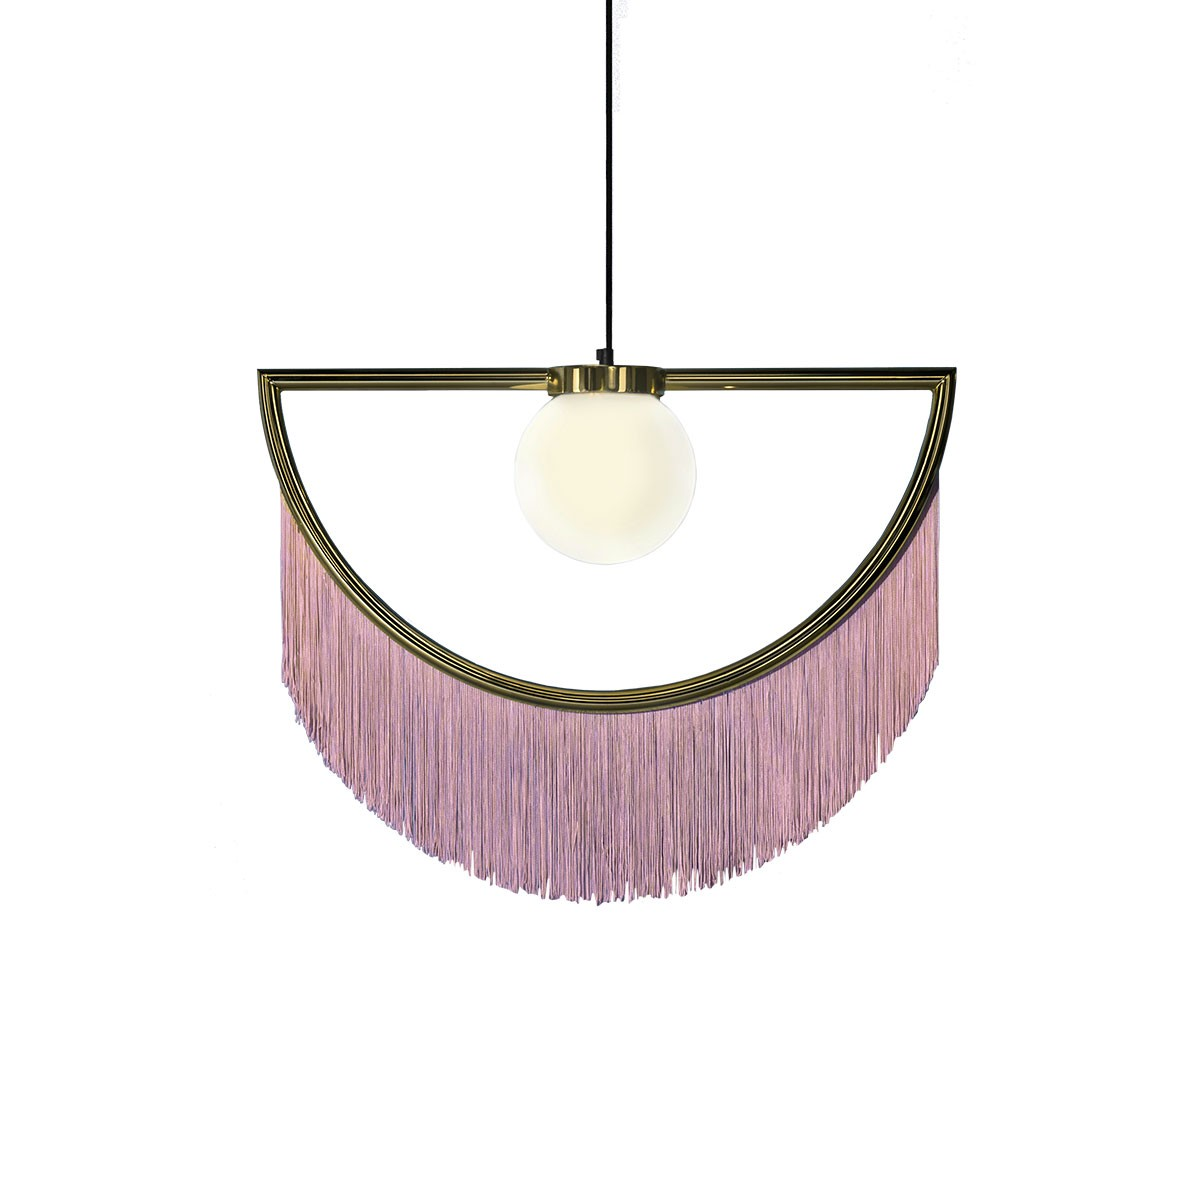 suspension-wink-houtique-or-rose-3